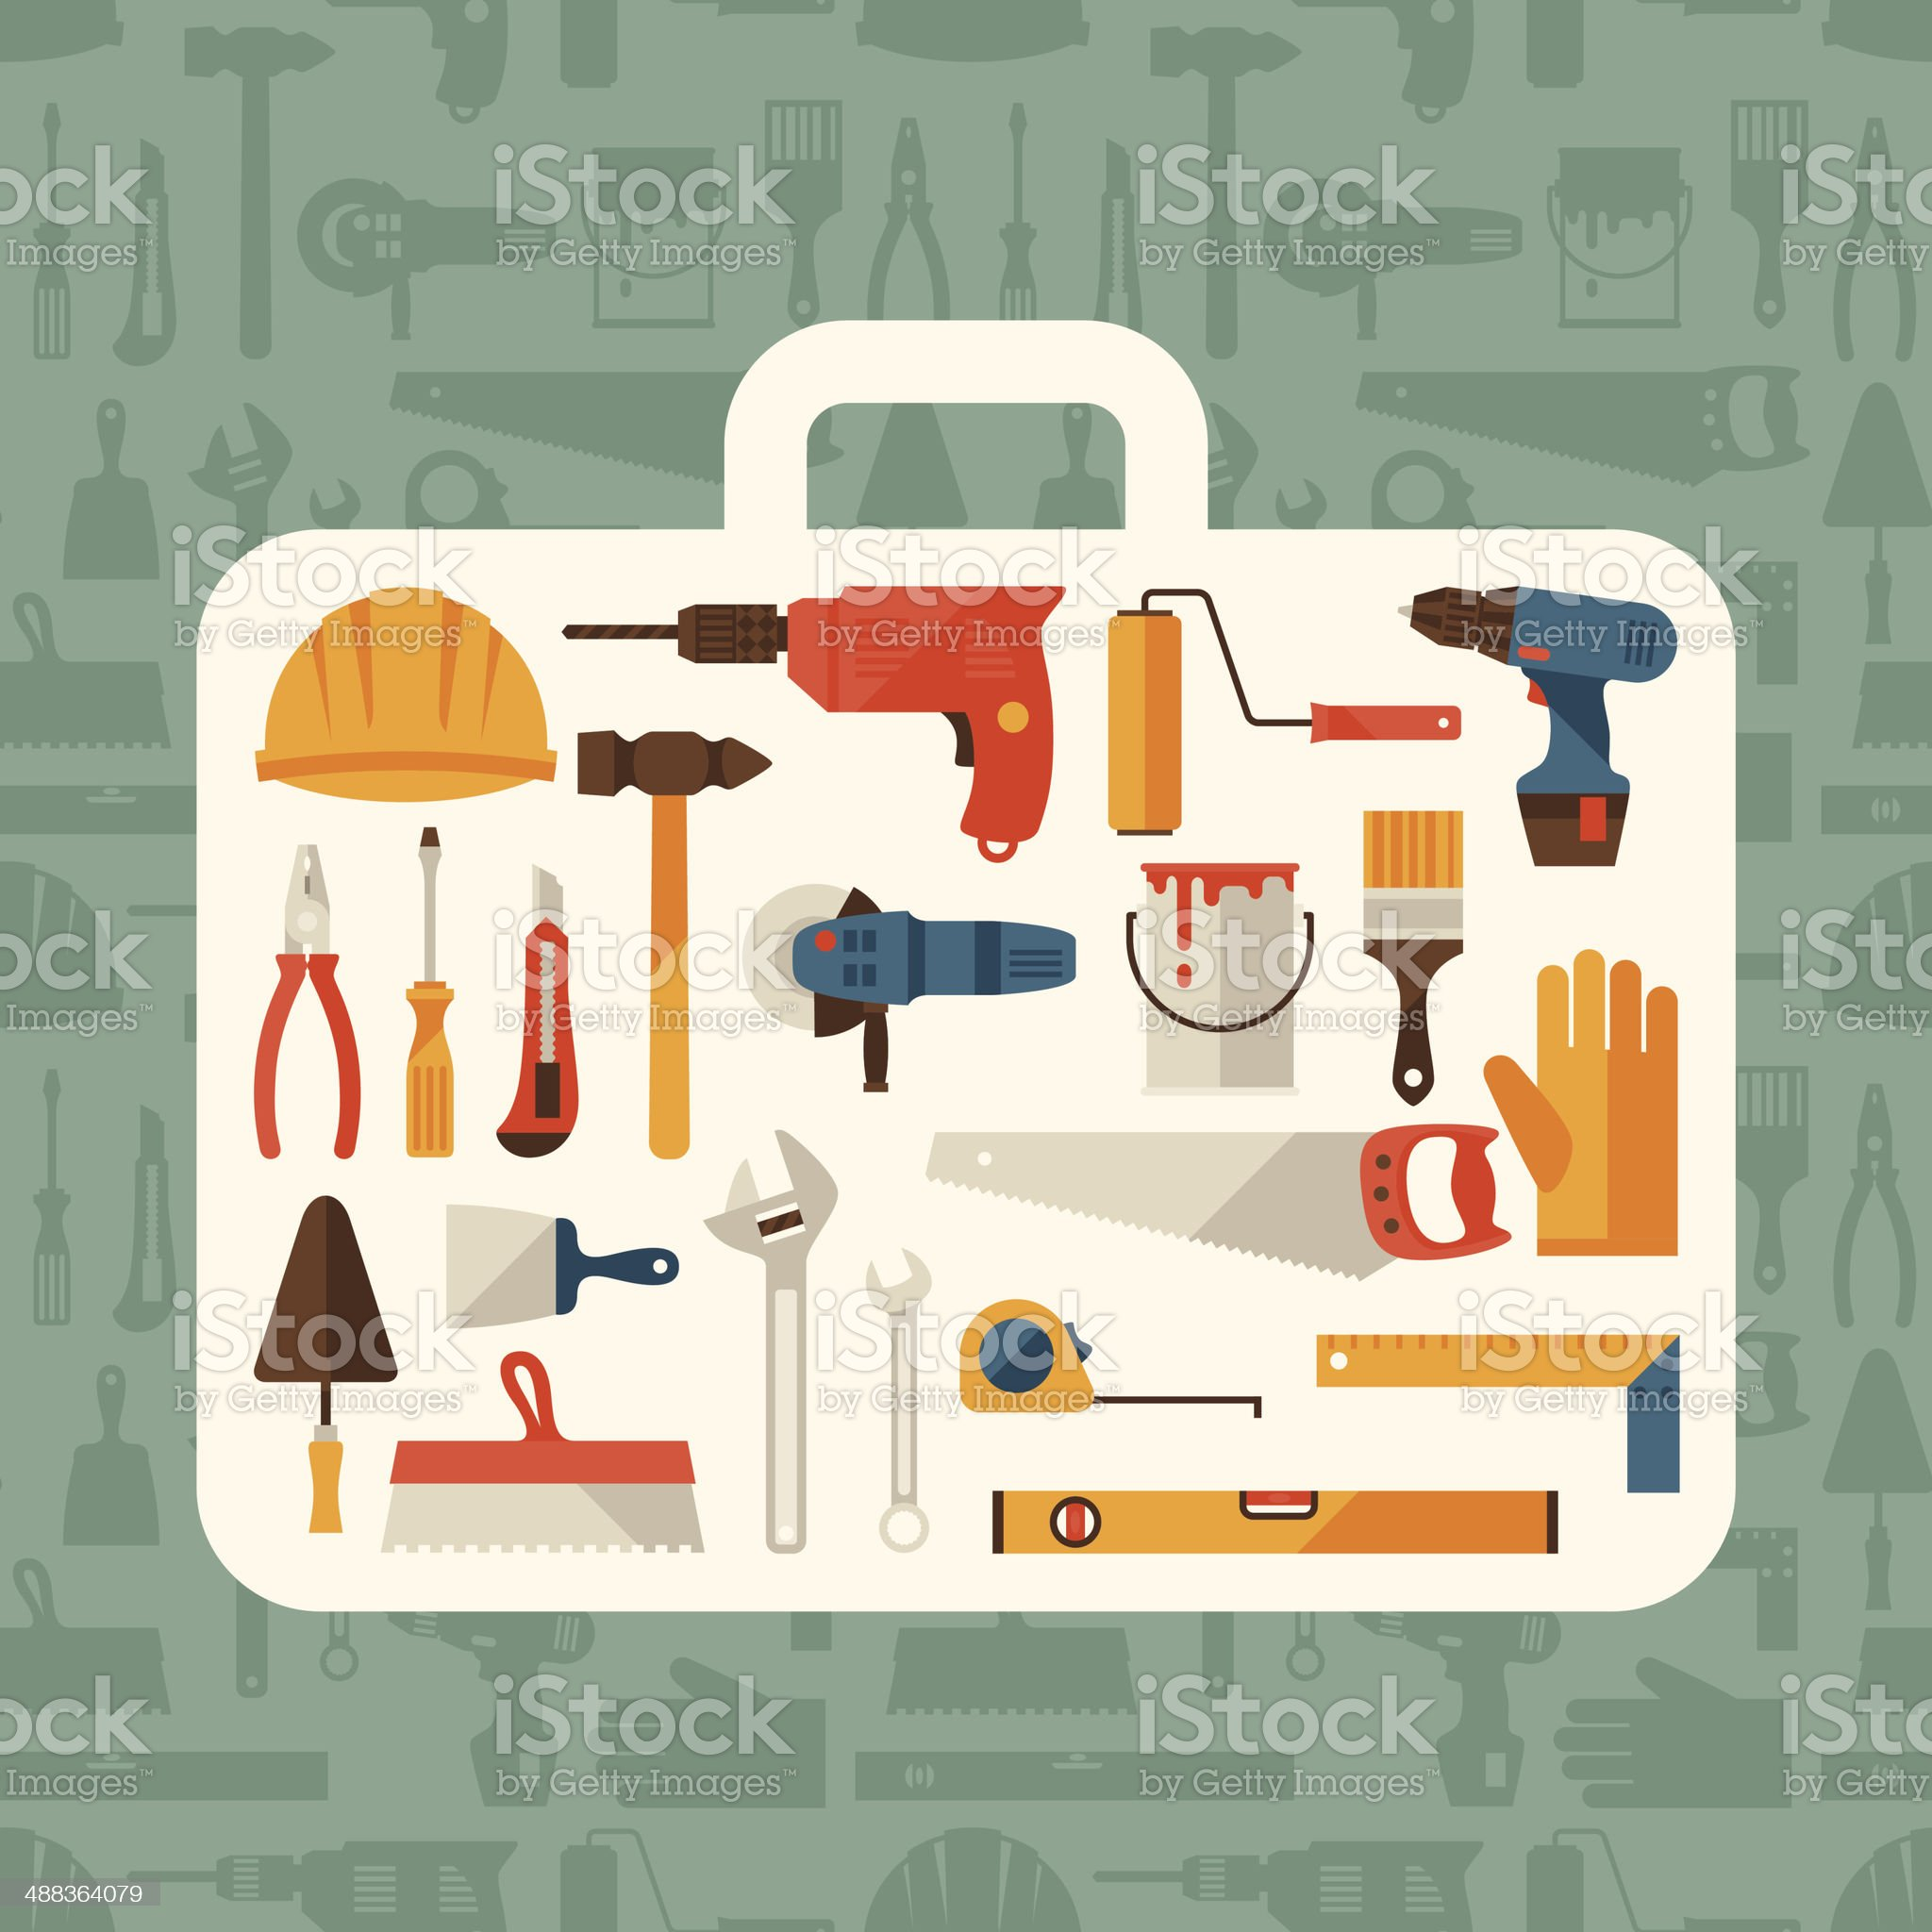 Repair and construction illustration with working tools icons. royalty-free stock vector art